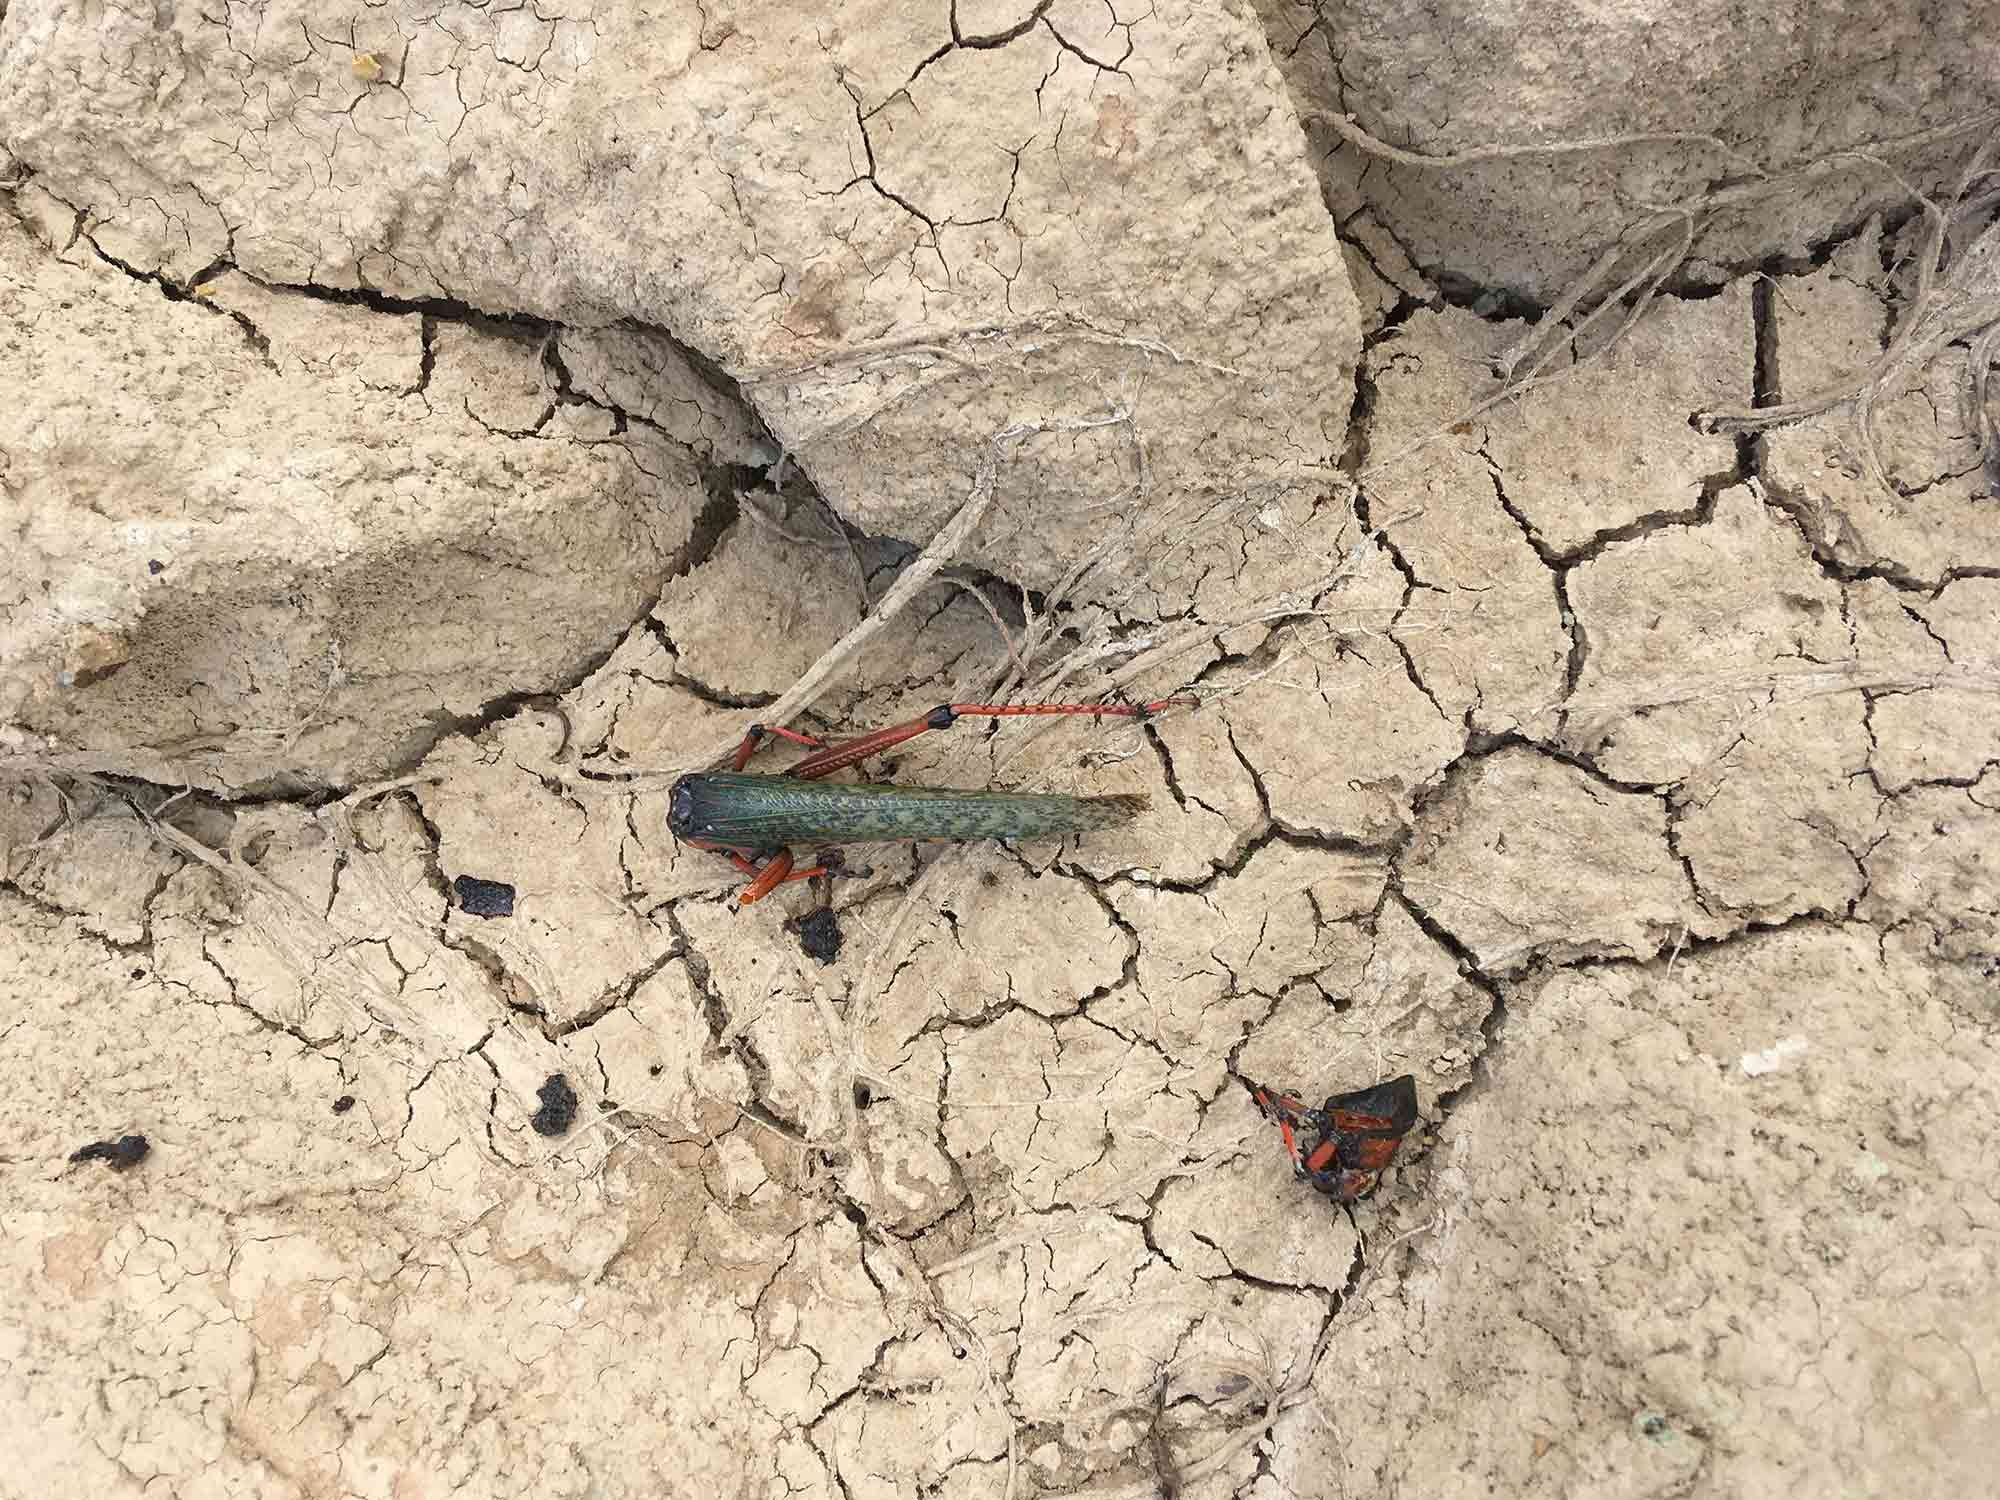 Decapitated River / Cerrejon coal mine in Colombia has diverted the River Bruno. In this international delegation to visit the works, we found the new river bed dead, as is this grasshopper on the same path (diana.salazar@ucl.ac.uk)